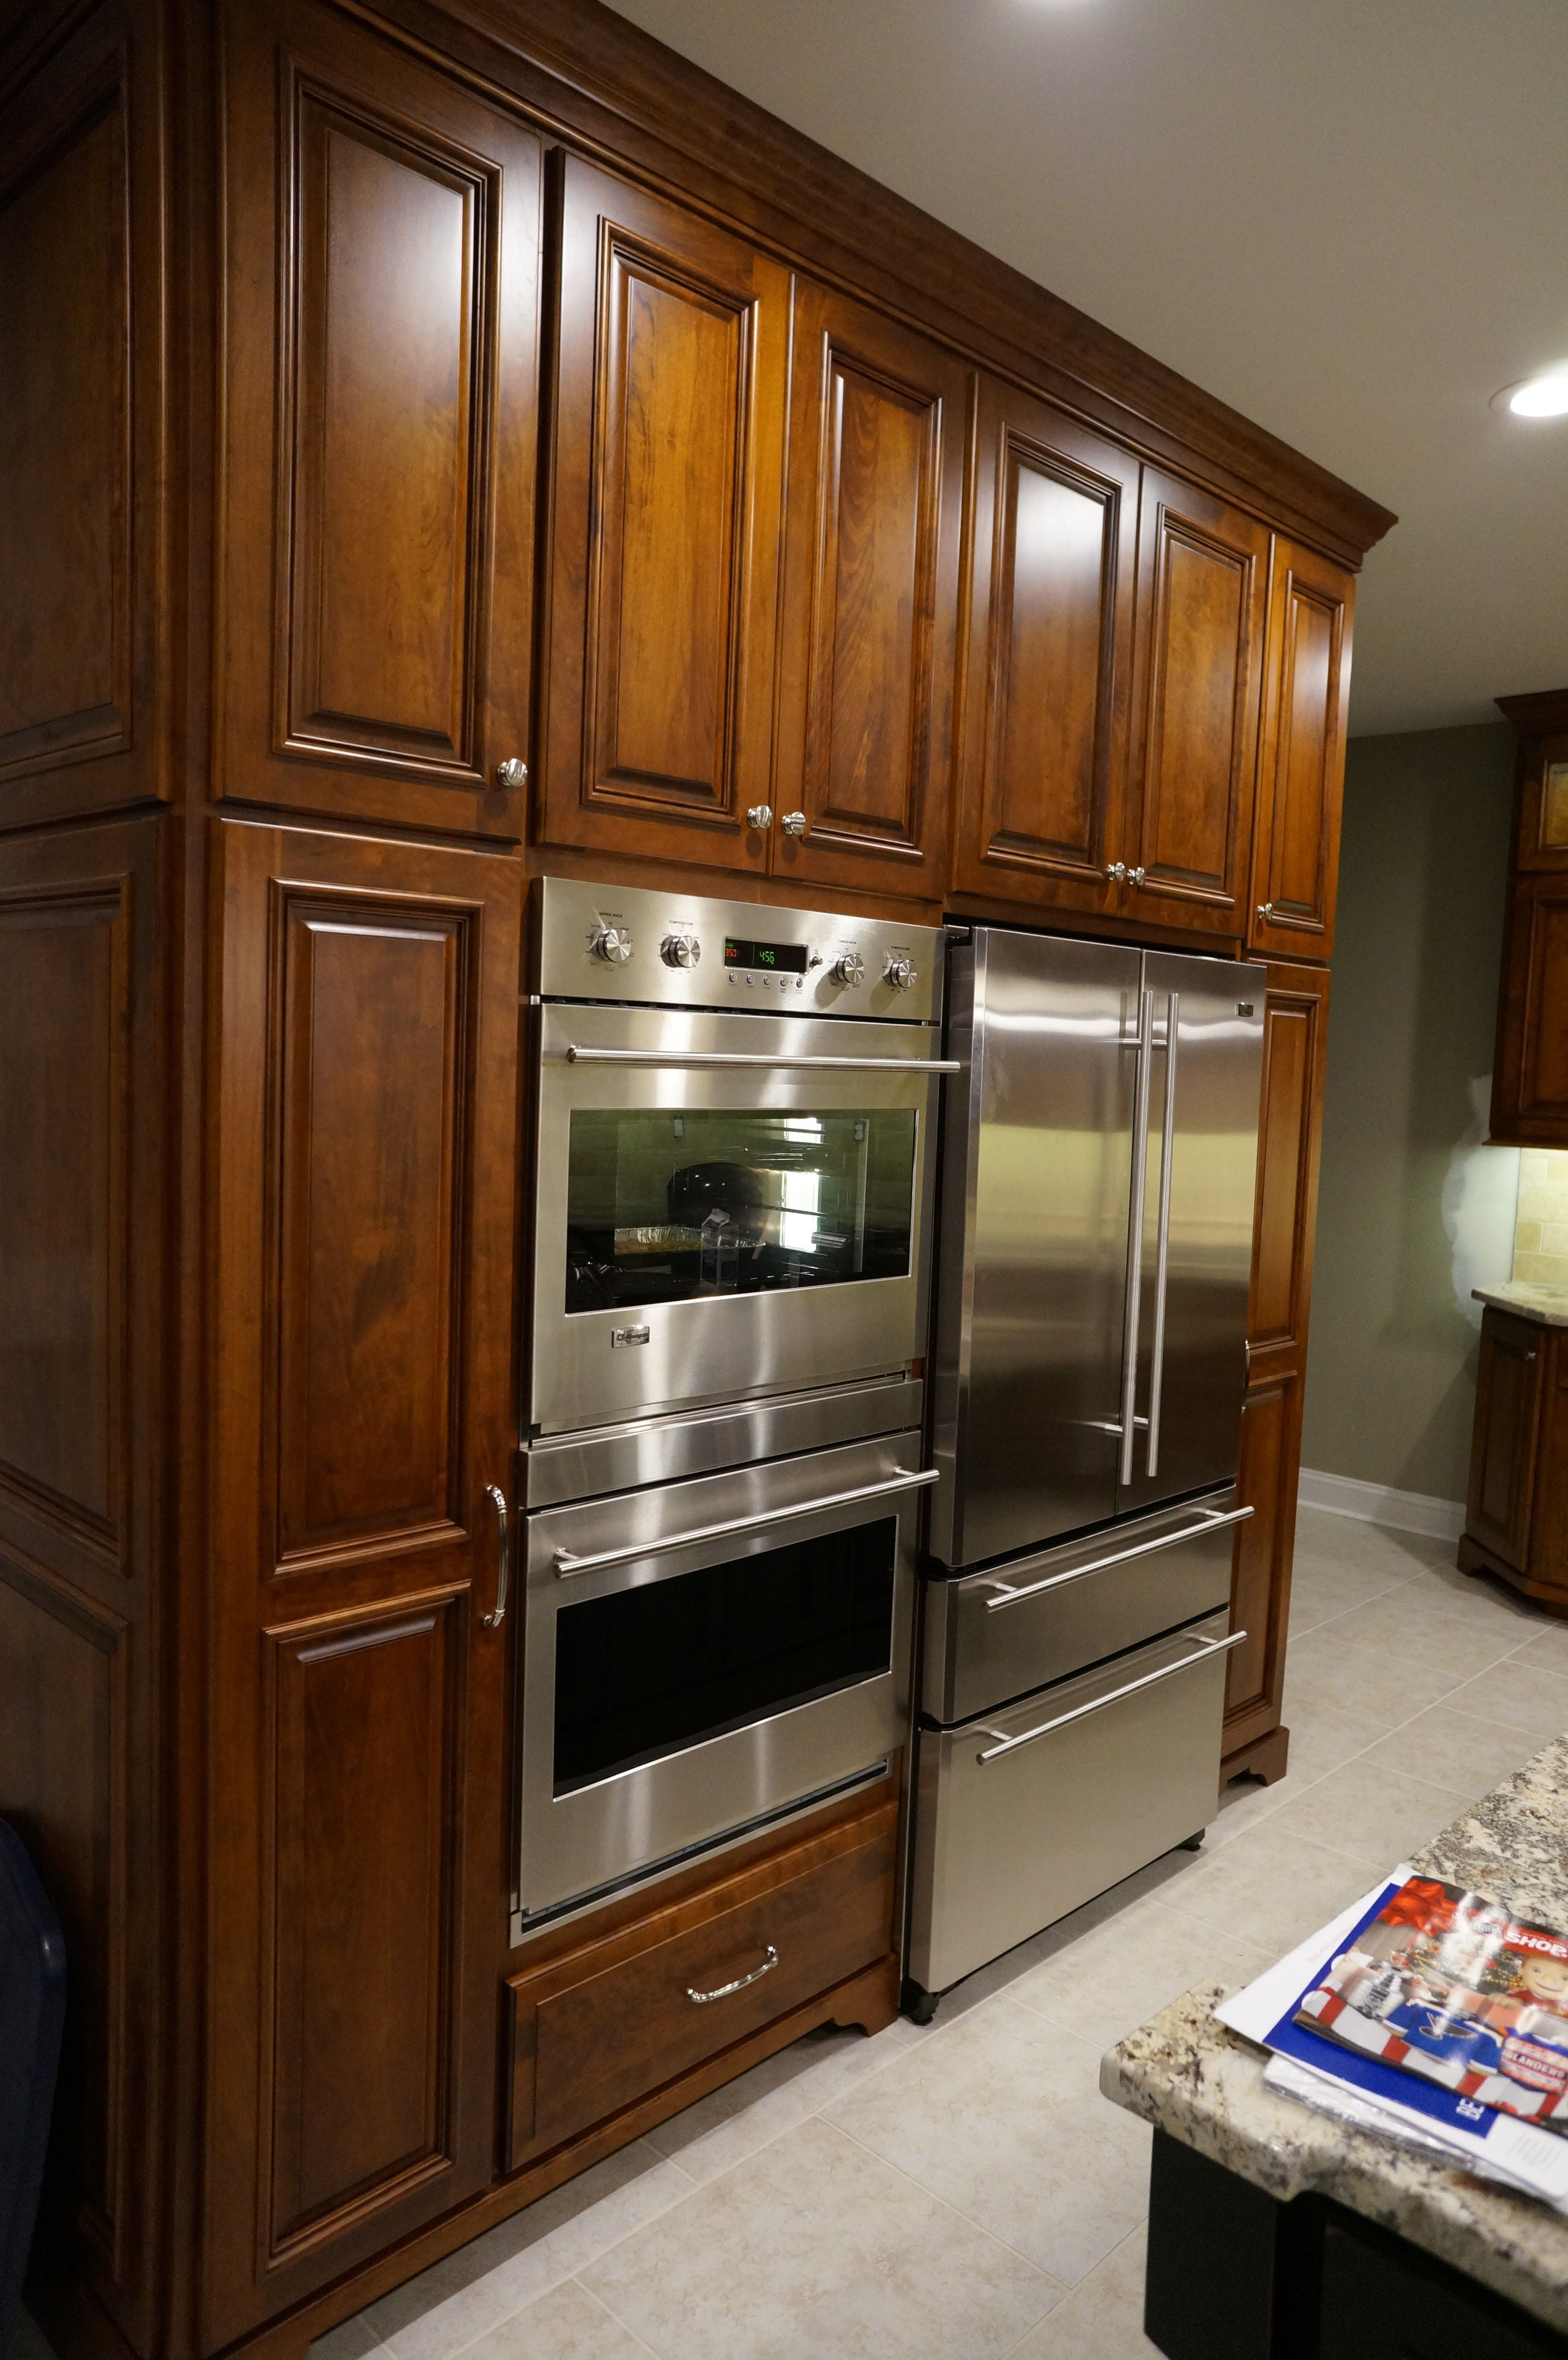 Custom Kitchen Cabinets With Double Oven And Refrigerator Surround Double Oven Kitchen Kitchen Cabinet Design Custom Kitchen Cabinets